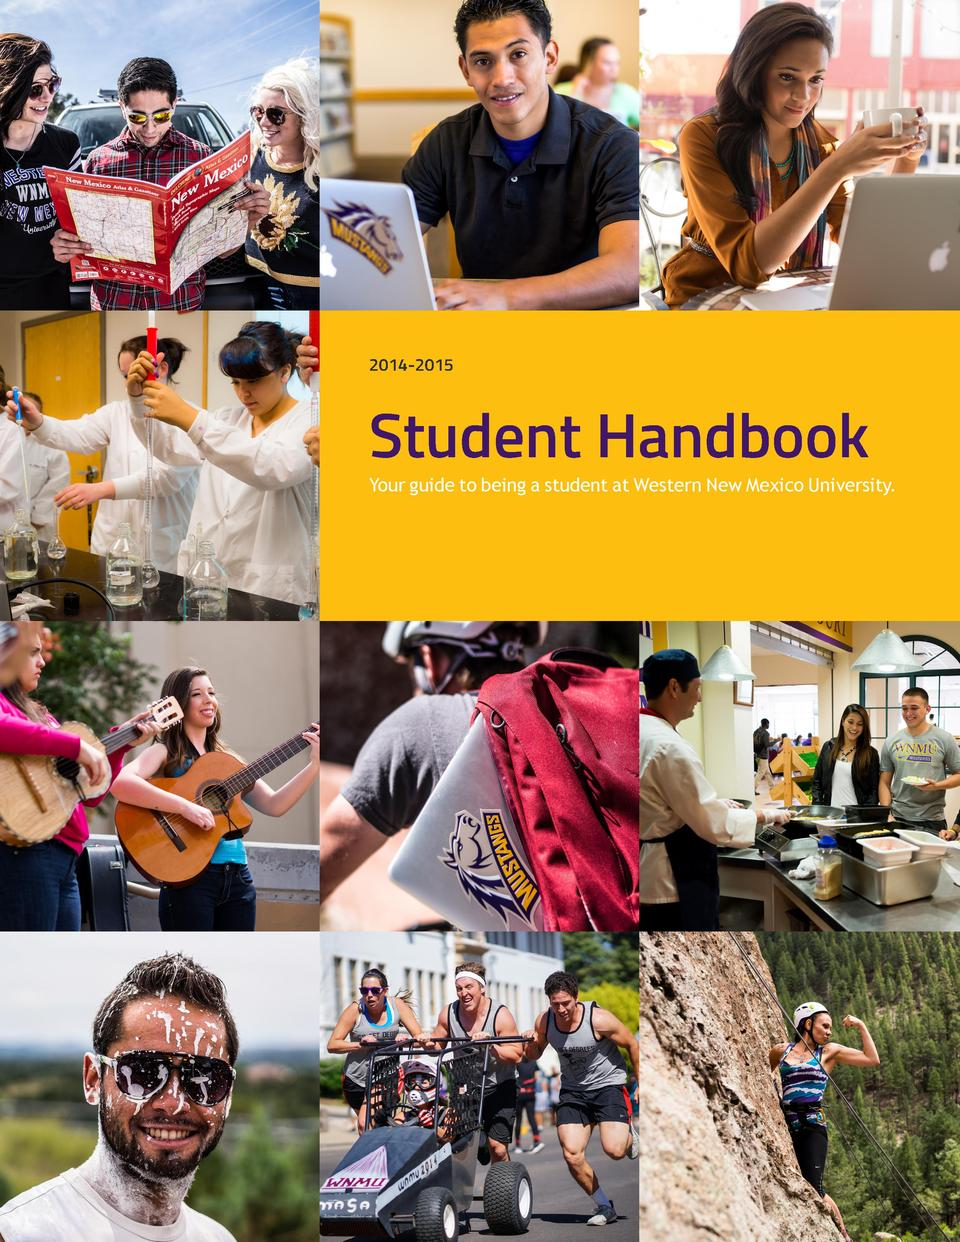 2014-2015  Student Handbook  Your guide to being a student at Western New Mexico University.